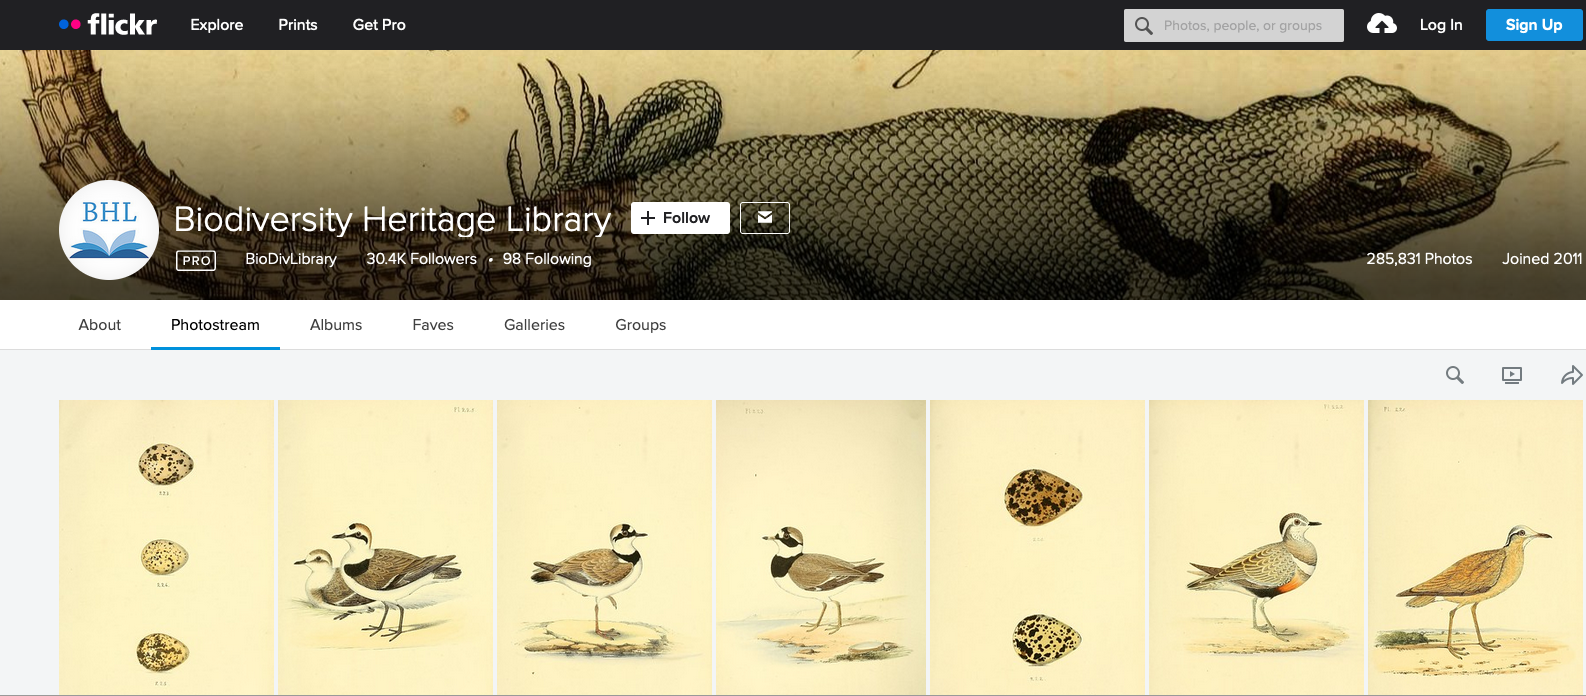 Biodiversity Heritage Library home page on Flickr